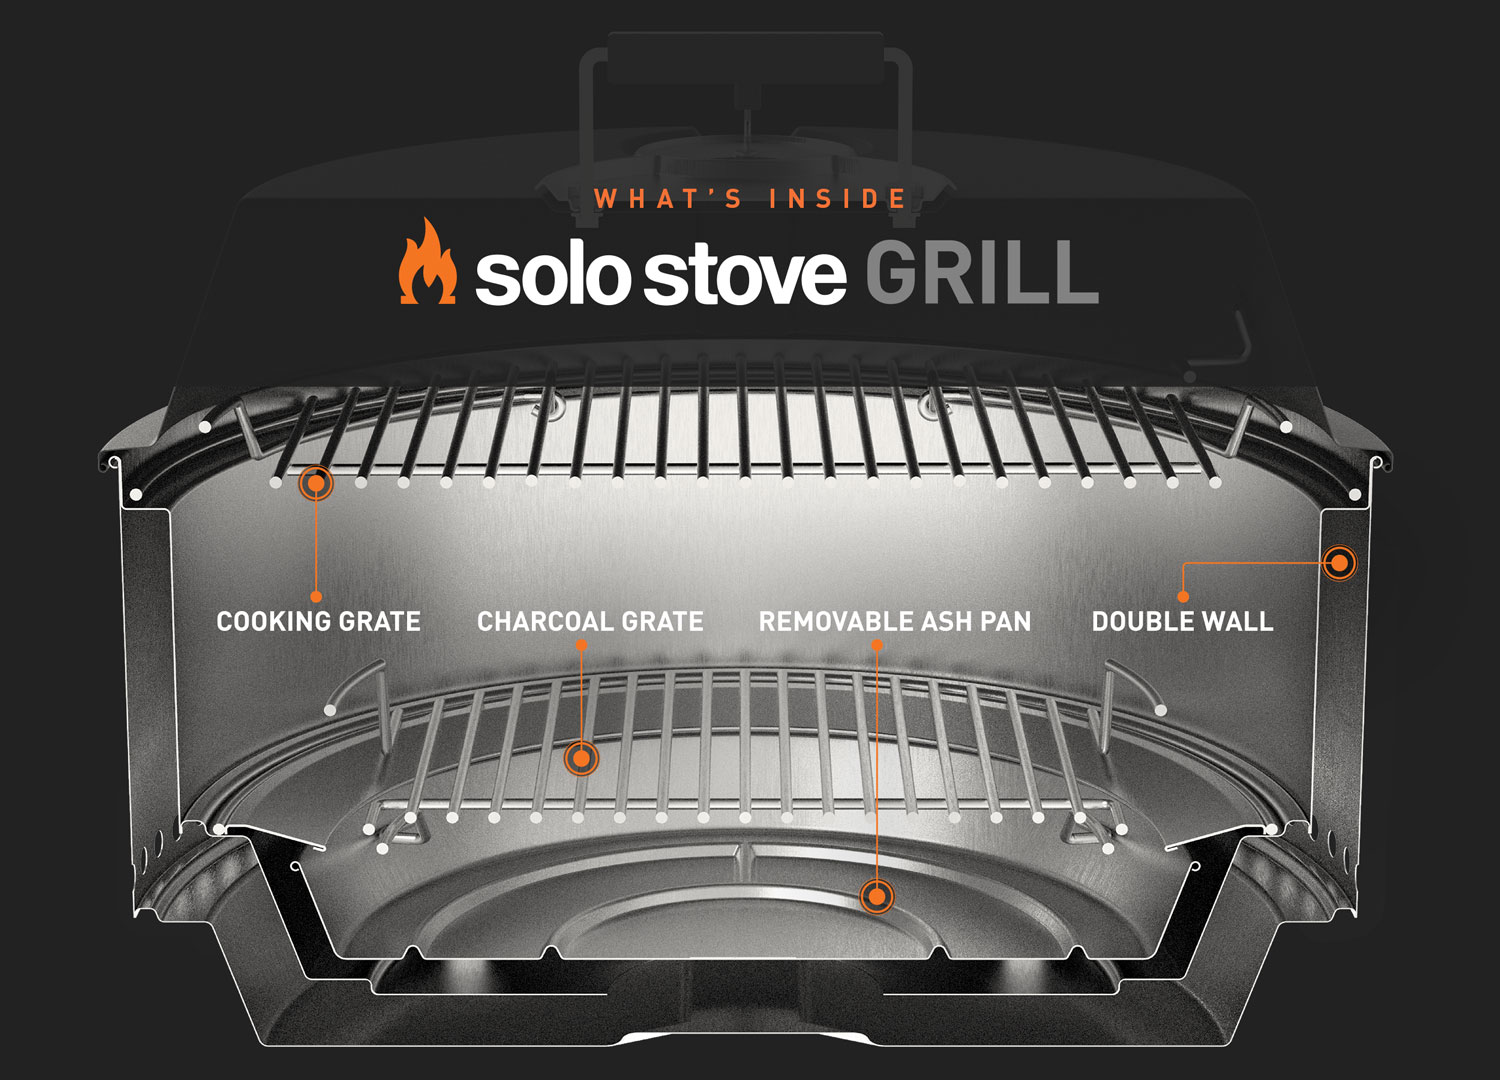 whats inside the grill image dark